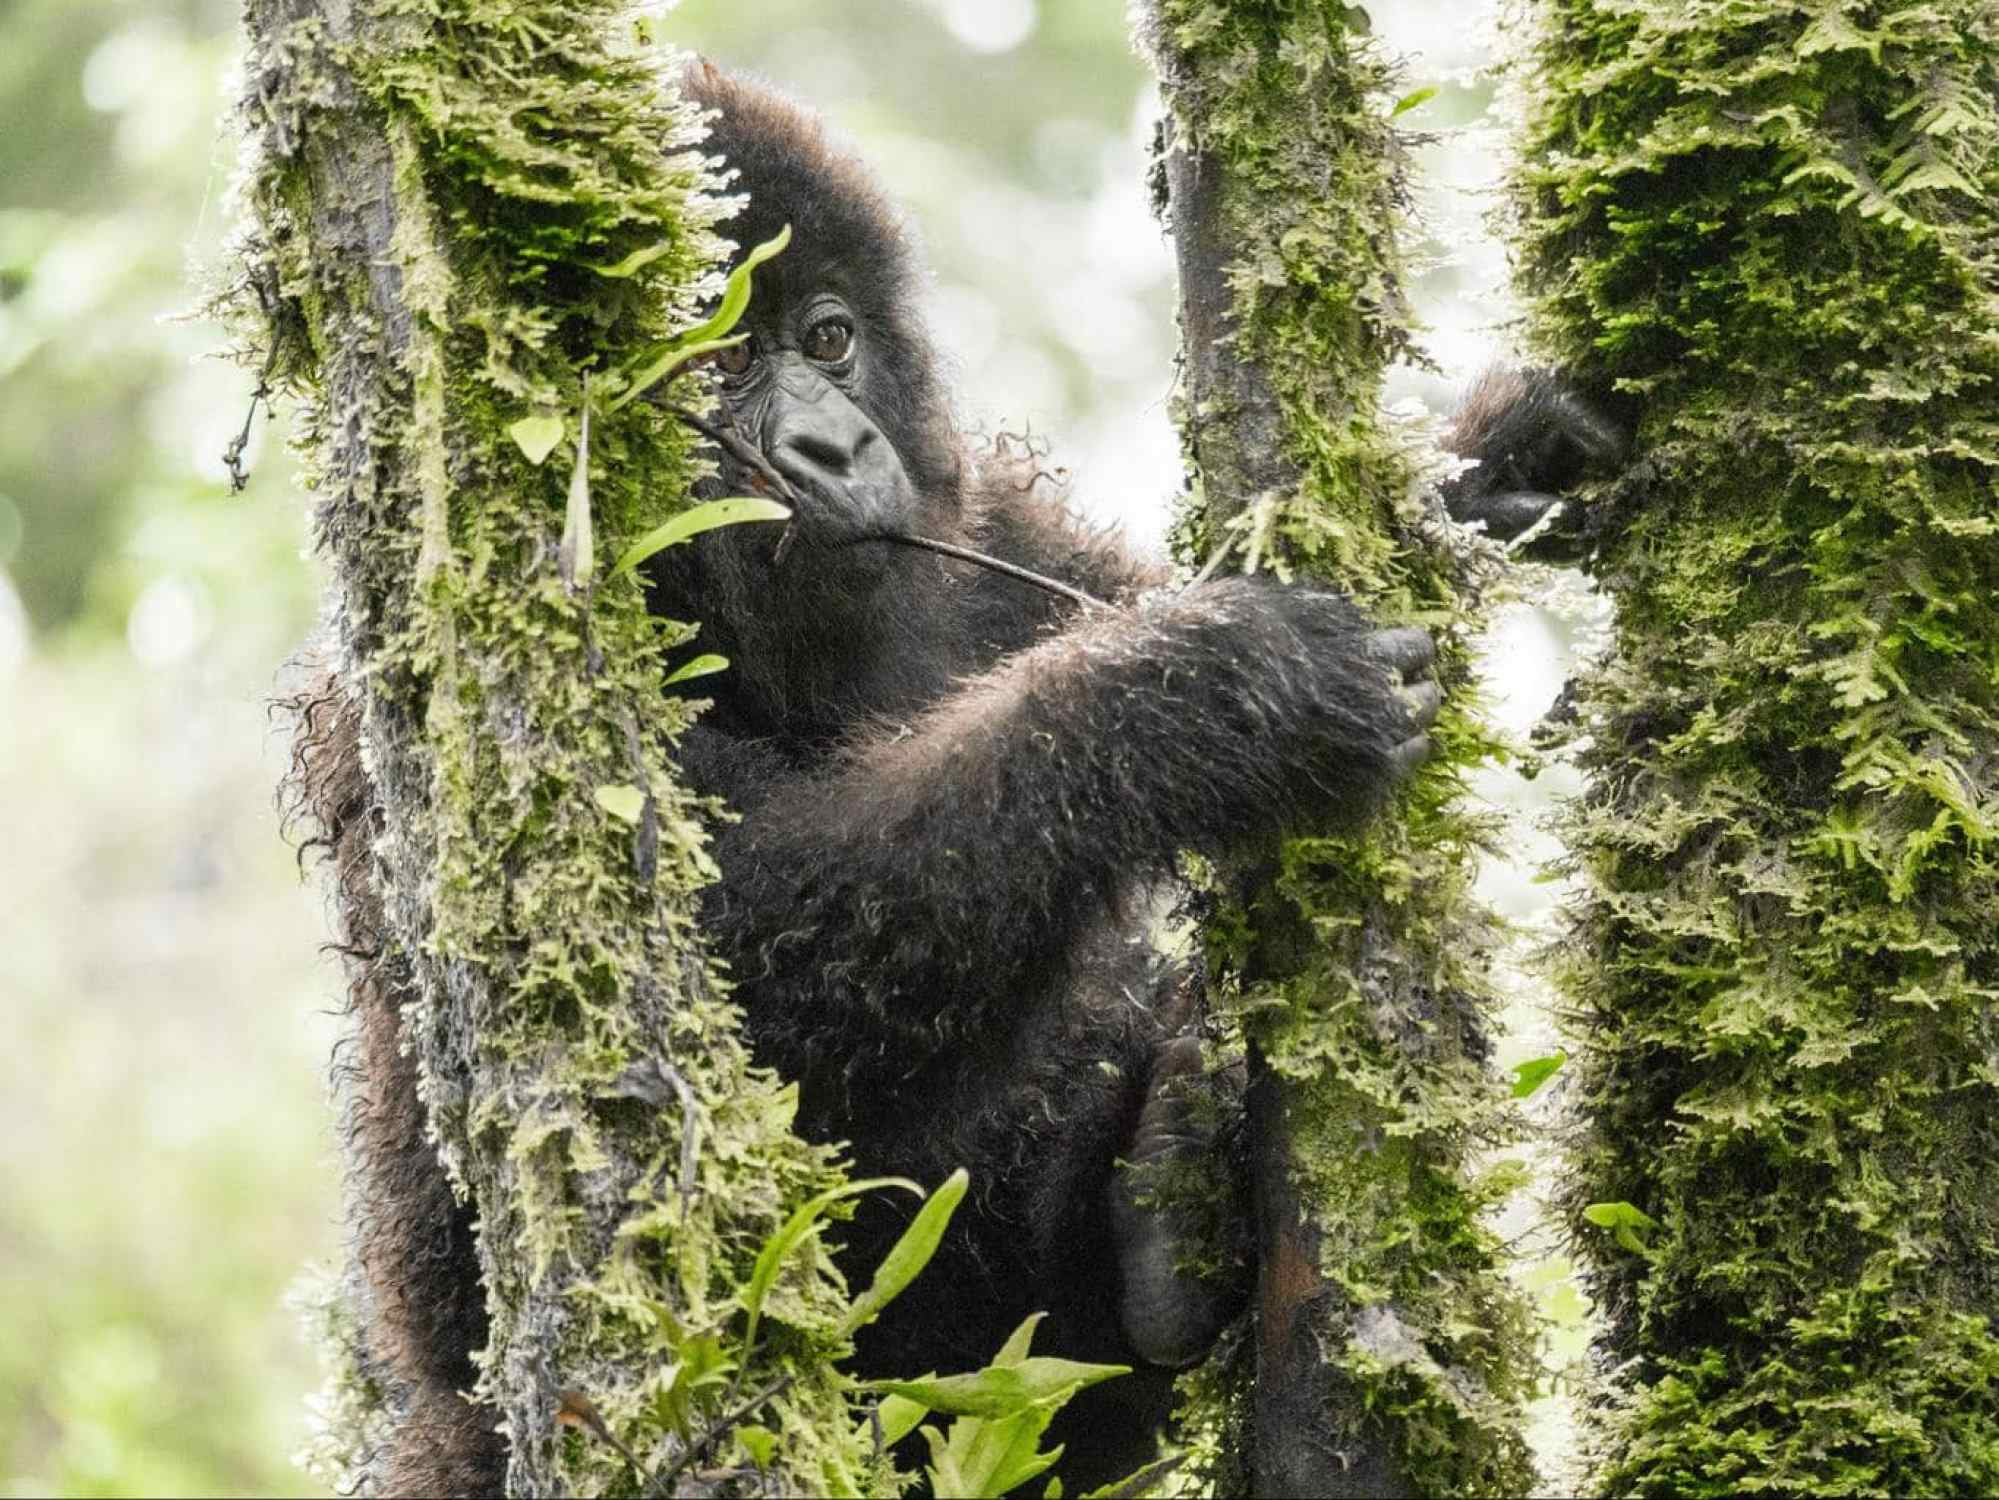 A young mountain gorilla playing in the trees